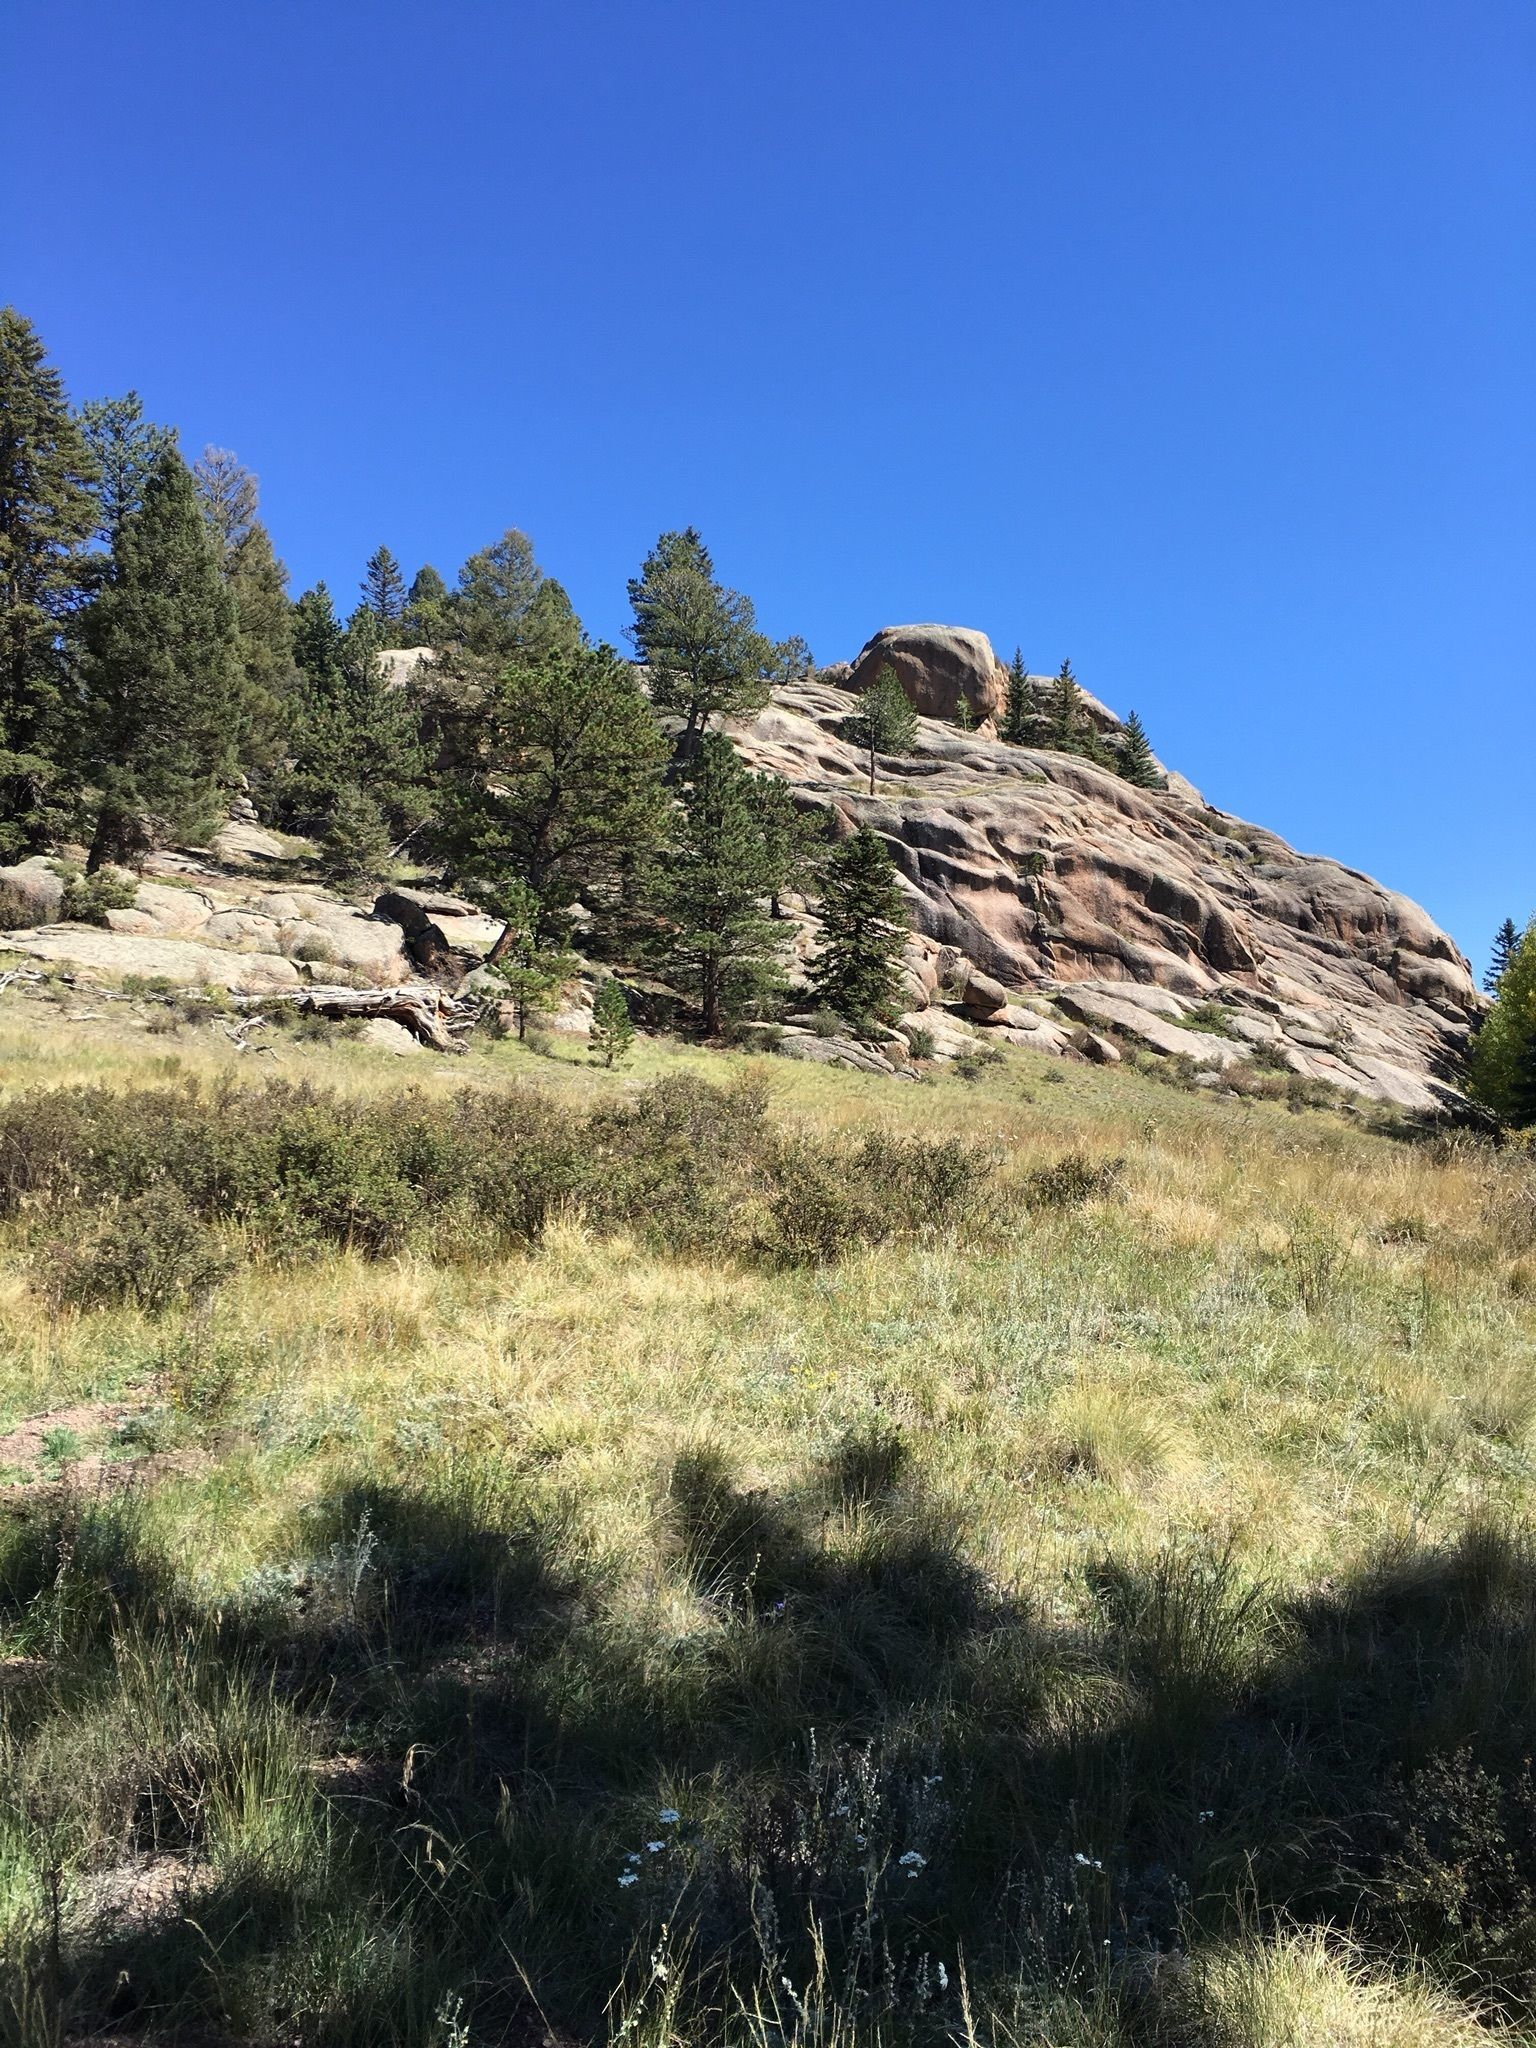 FLORISSANT FOSSIL BEDS NATIONAL MONUMENT - GO HIKE COLORADO